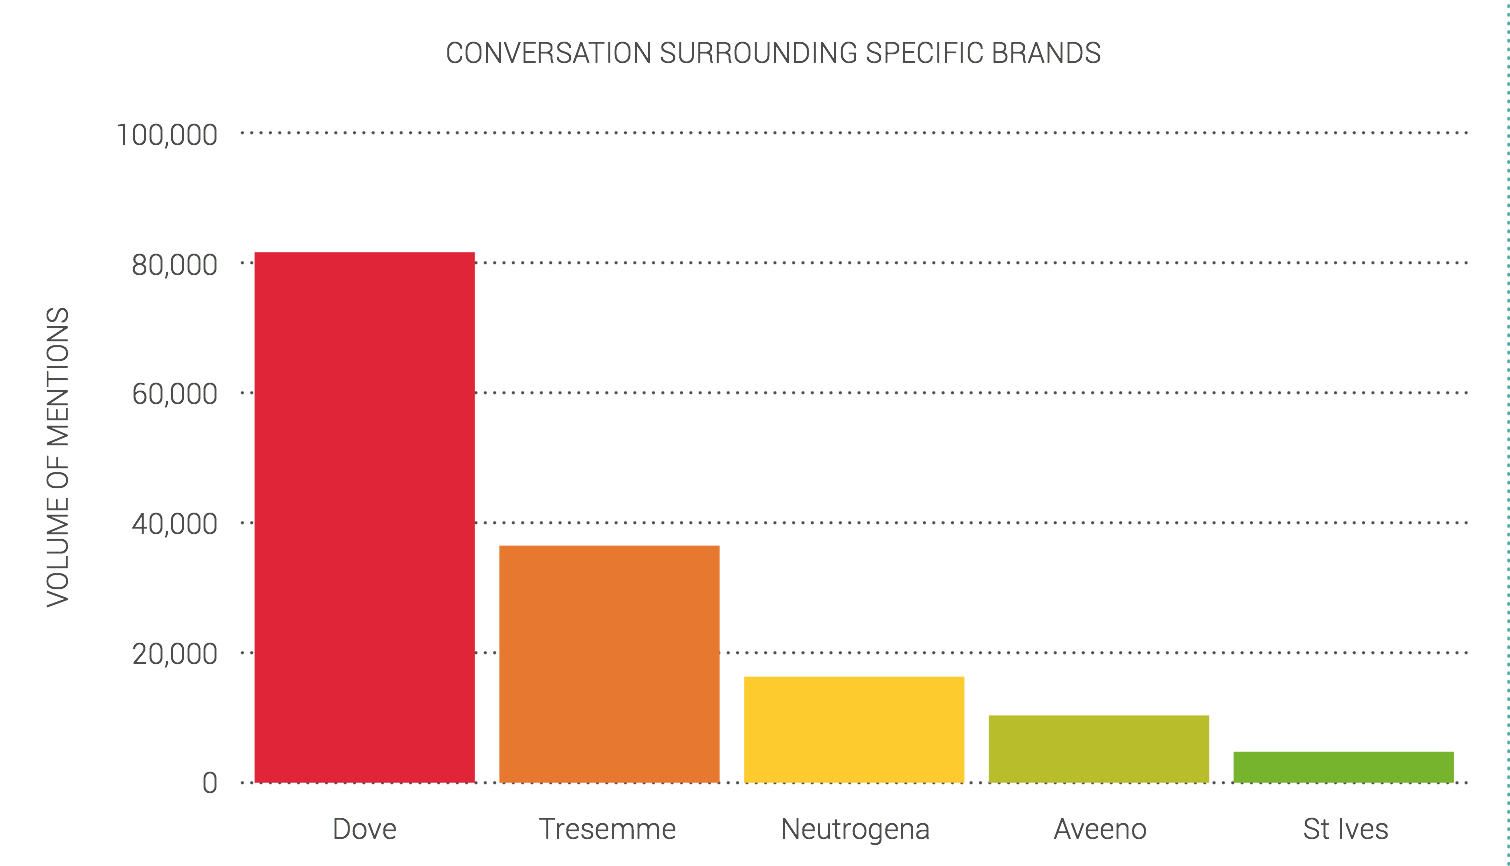 Dove - smashing it in the social conversation stakes